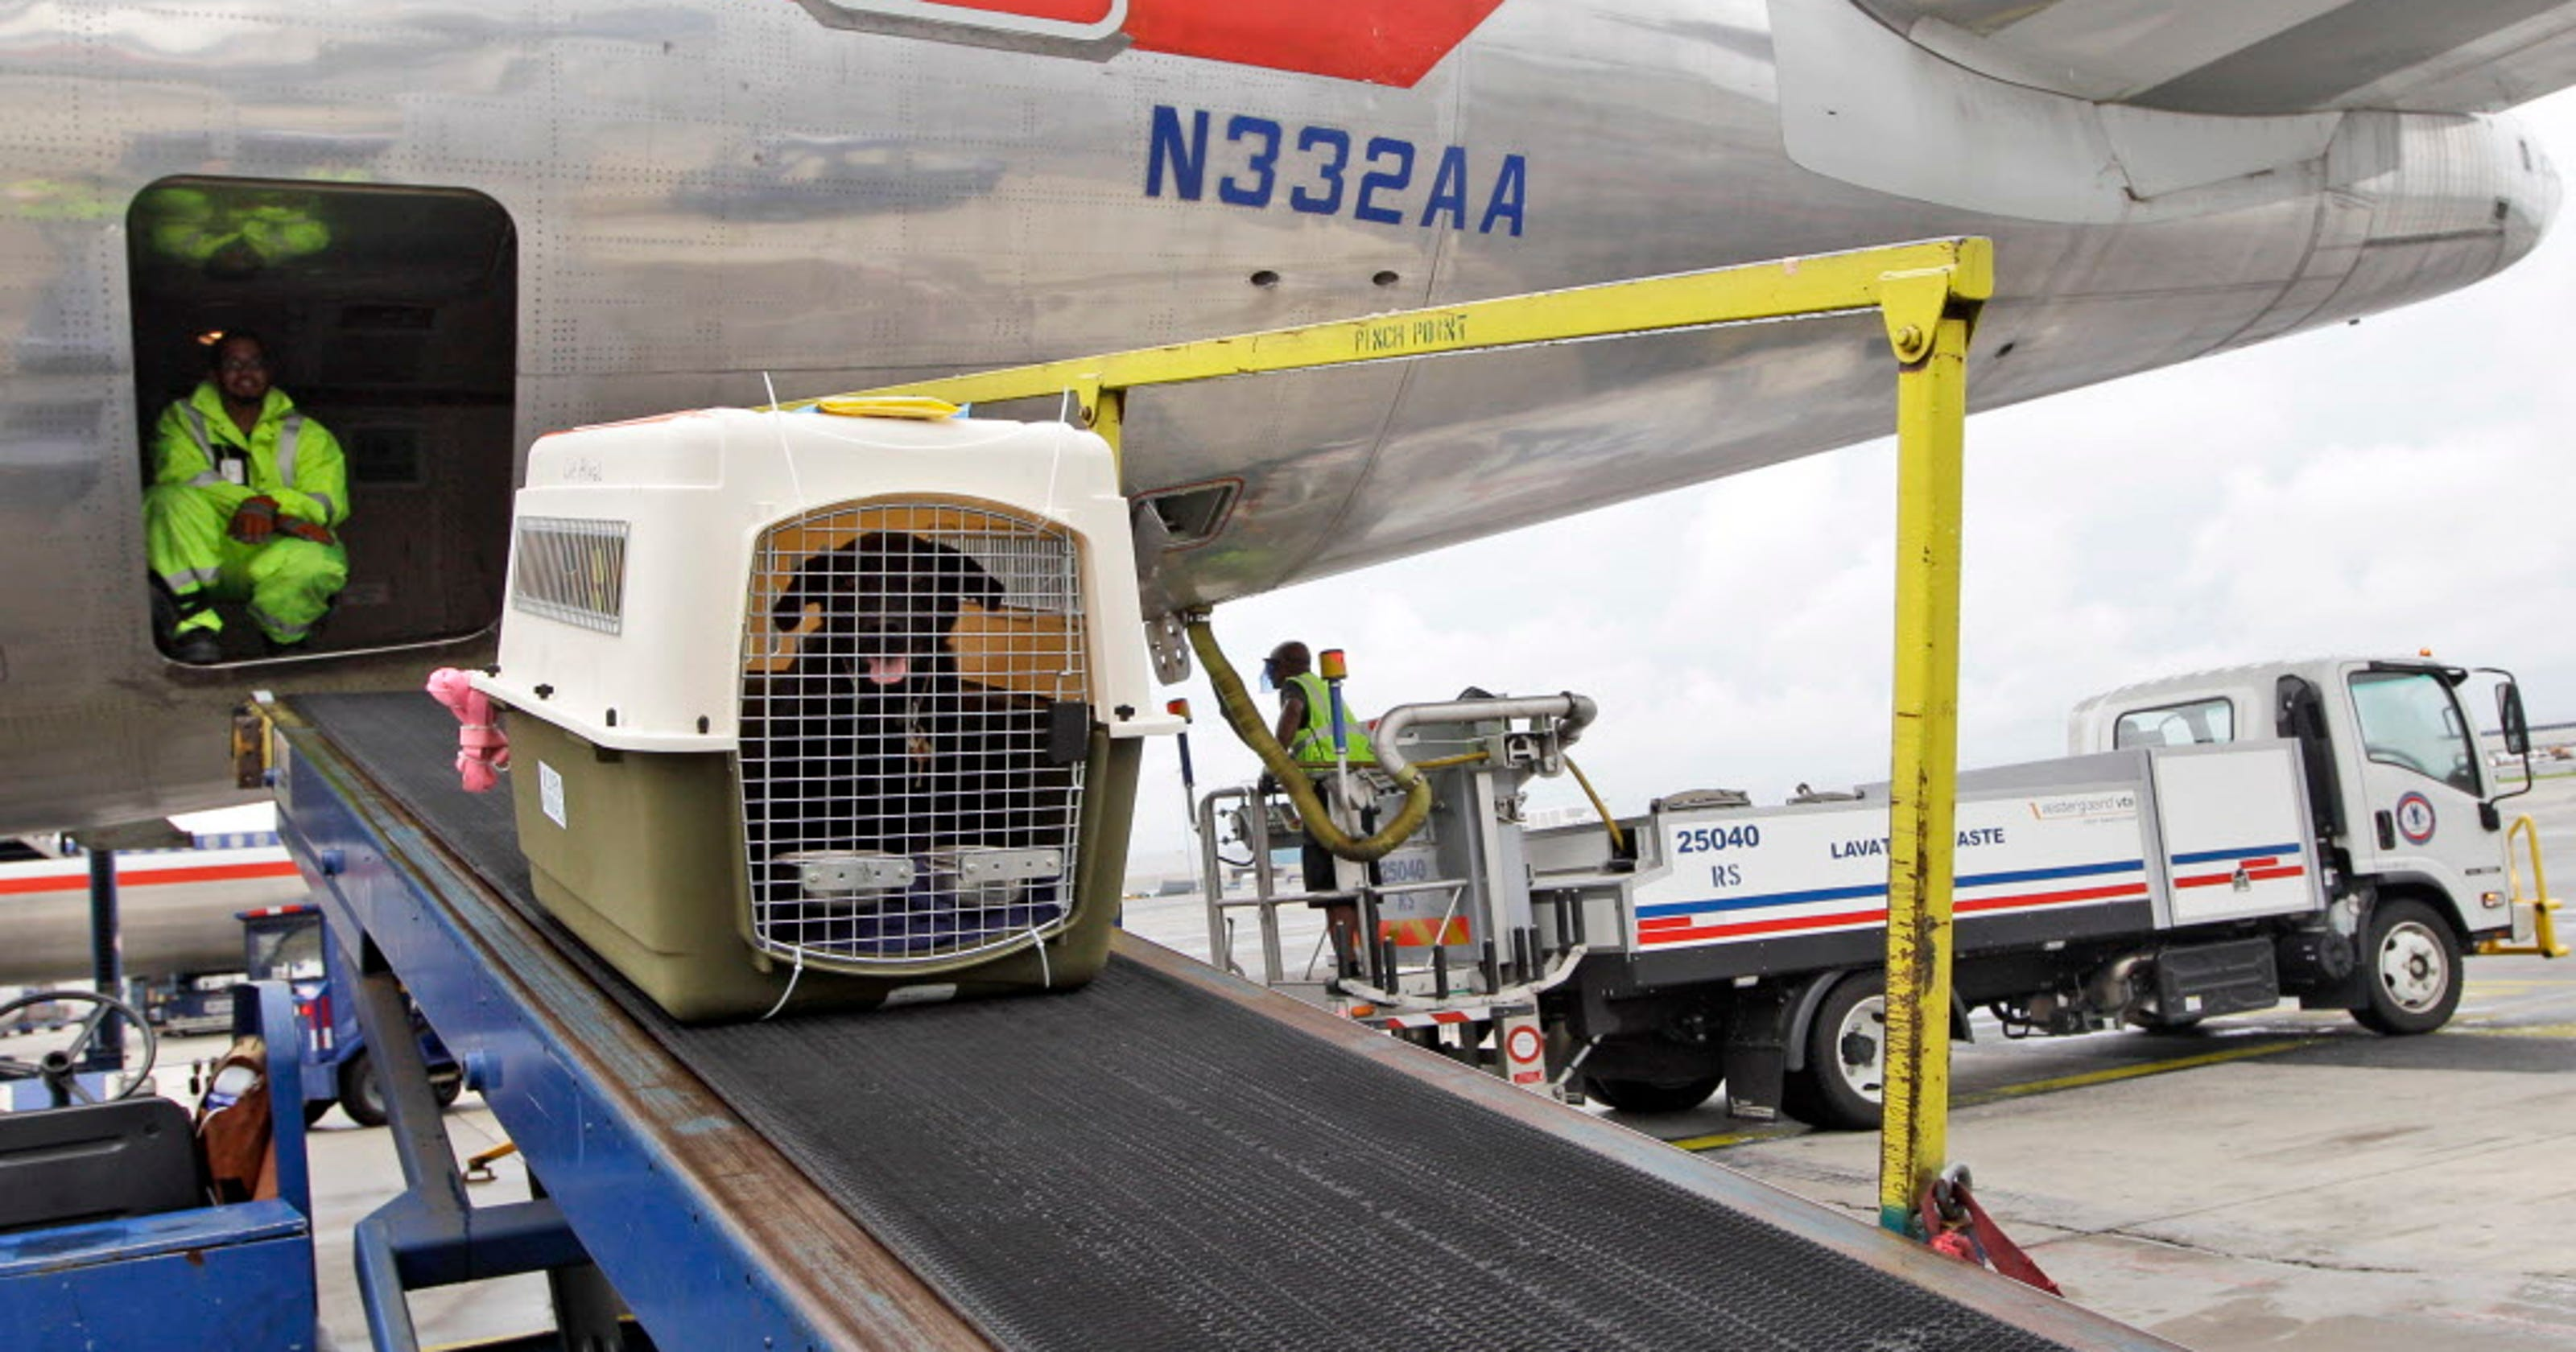 United Airlines Suspends Reservations For Animals In Cargo